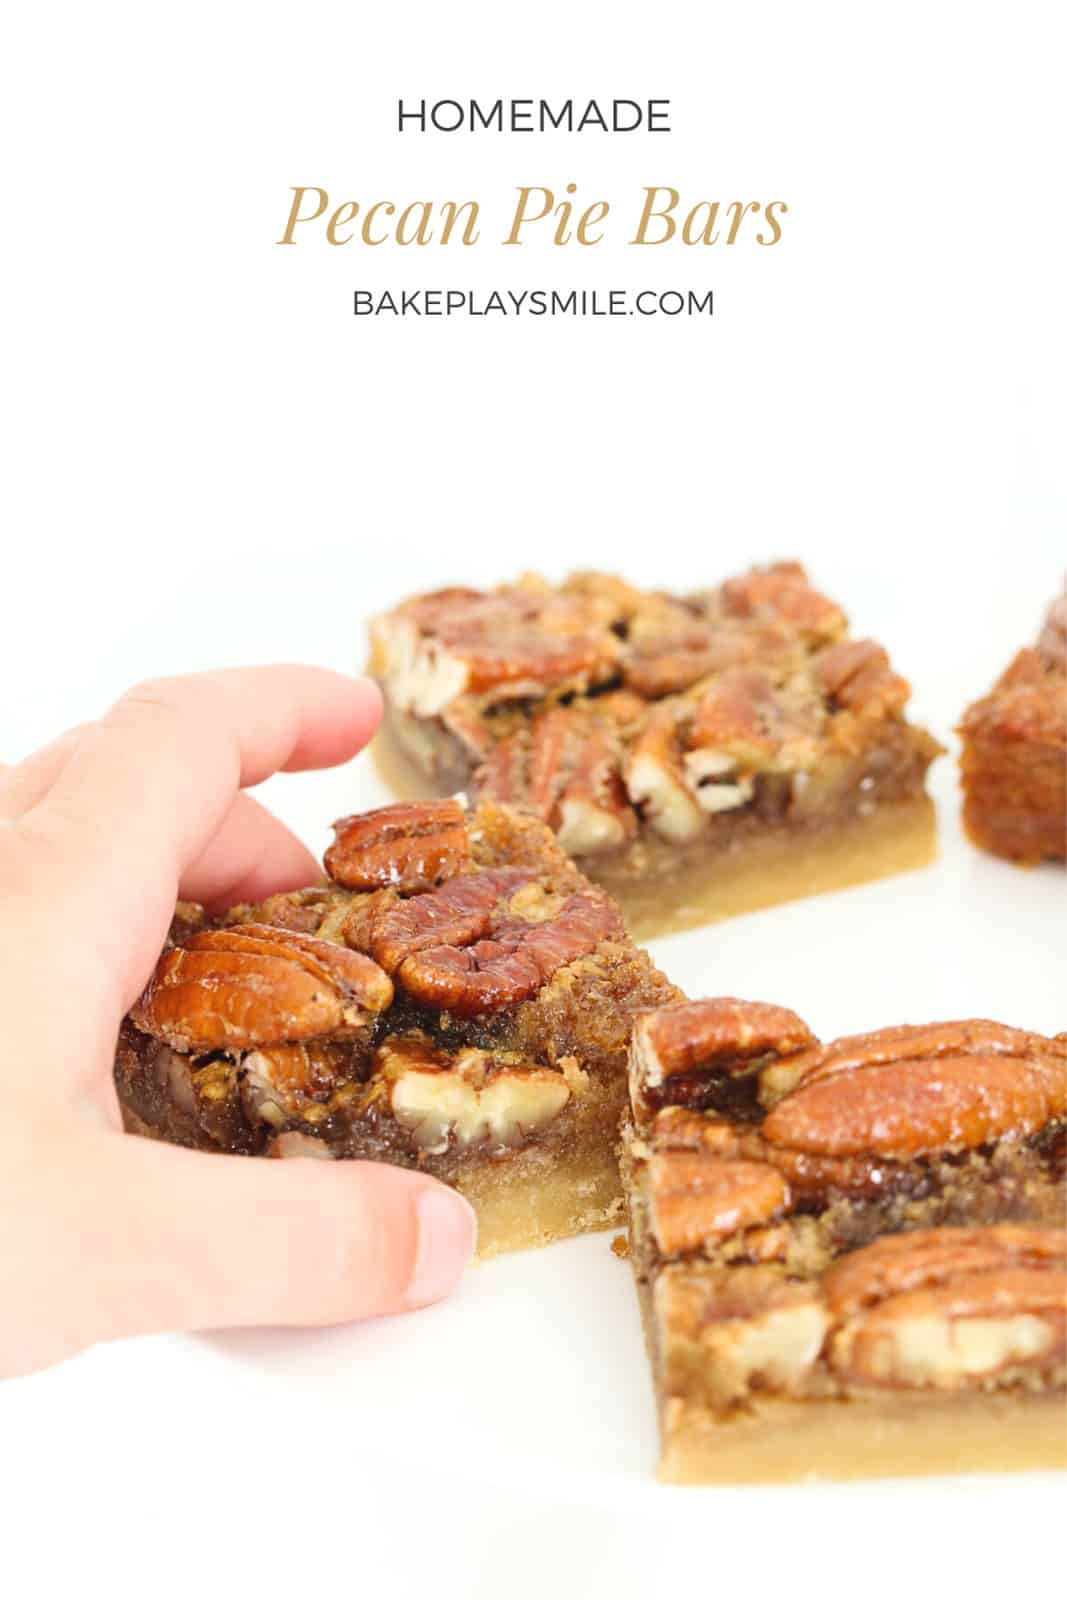 A child's hand holding a piece of caramel pecan slice.